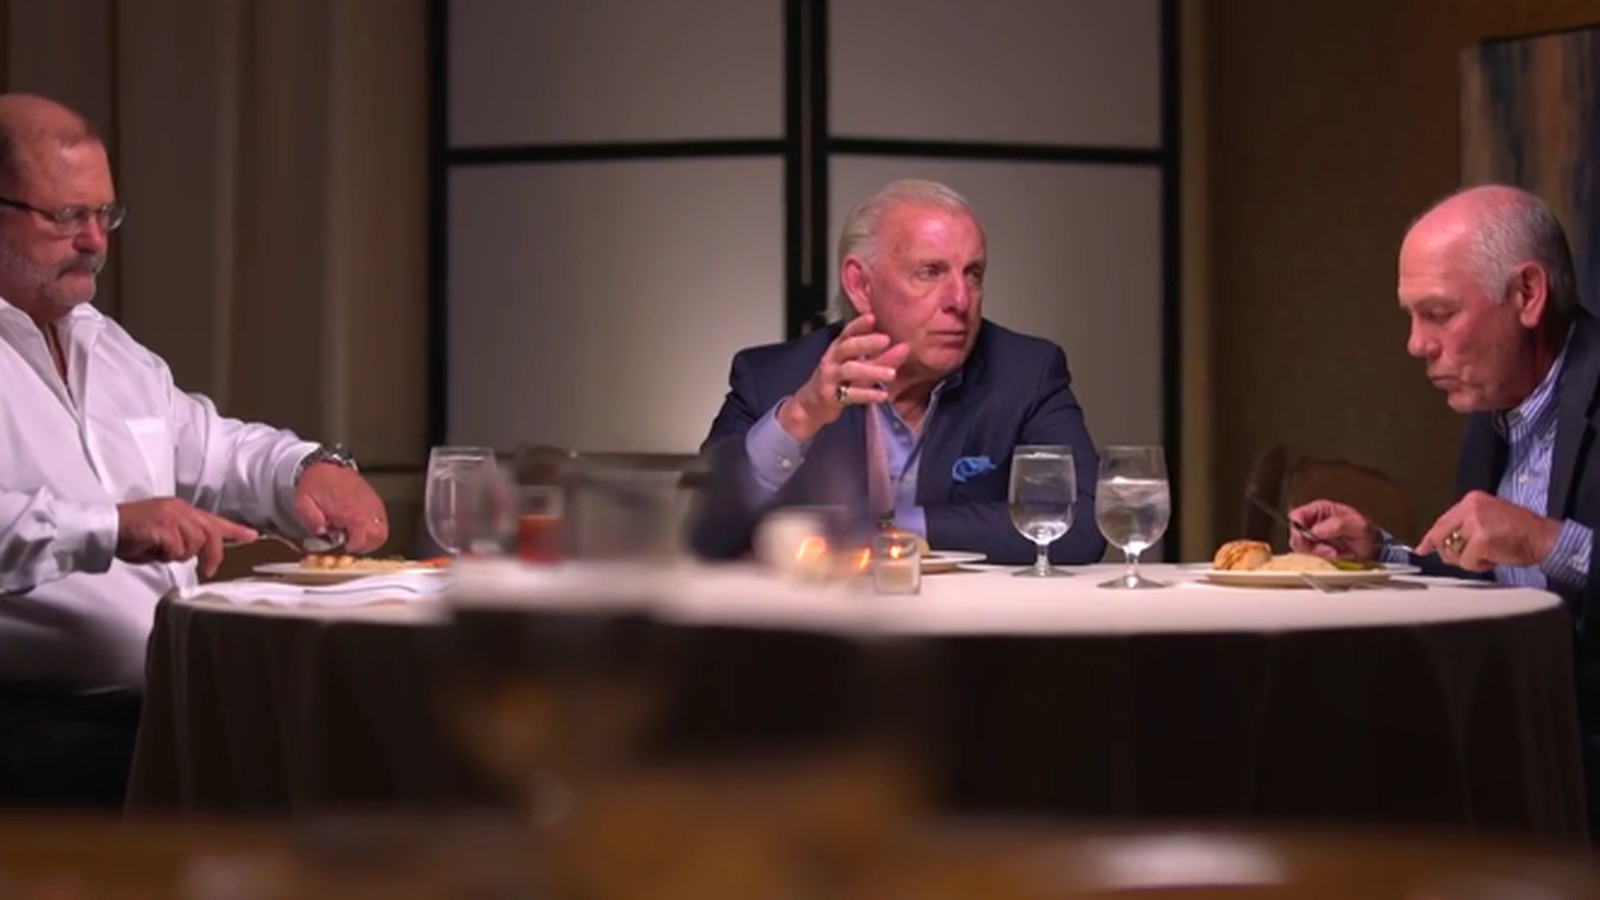 Table For 3 Ric Flair Arn Anderson Tully Blanchard